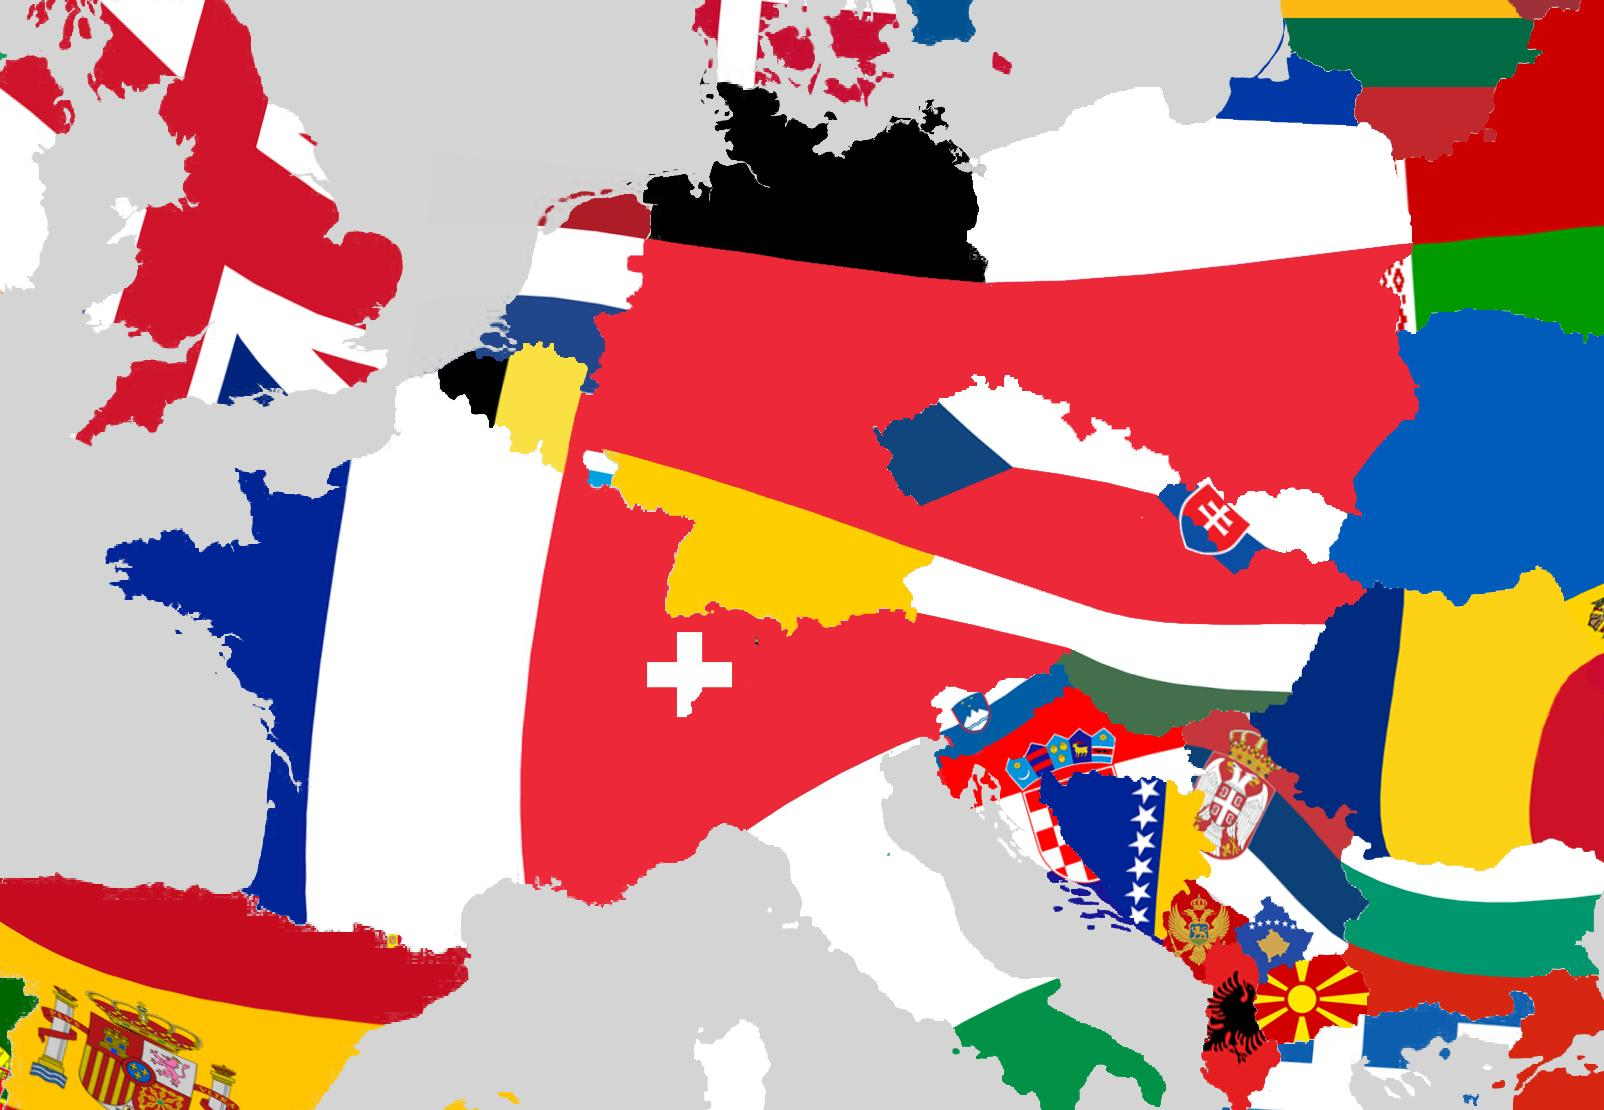 Europe Flag Map The beautiful flag map that will change the way you look at Europe